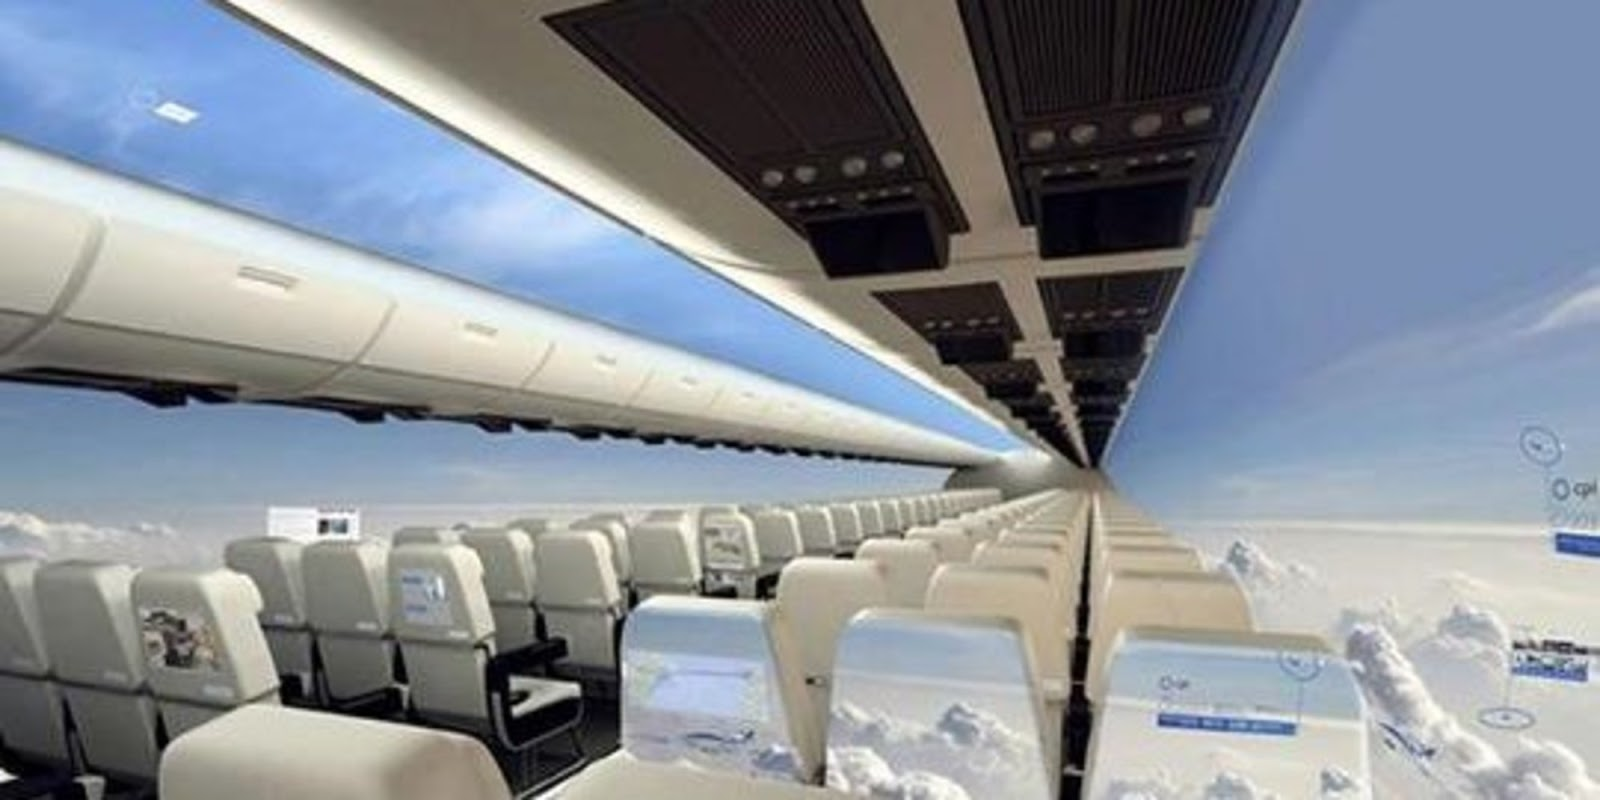 These Futuristic Windowless Planes Will Become The Dream For Those Who Love Flying